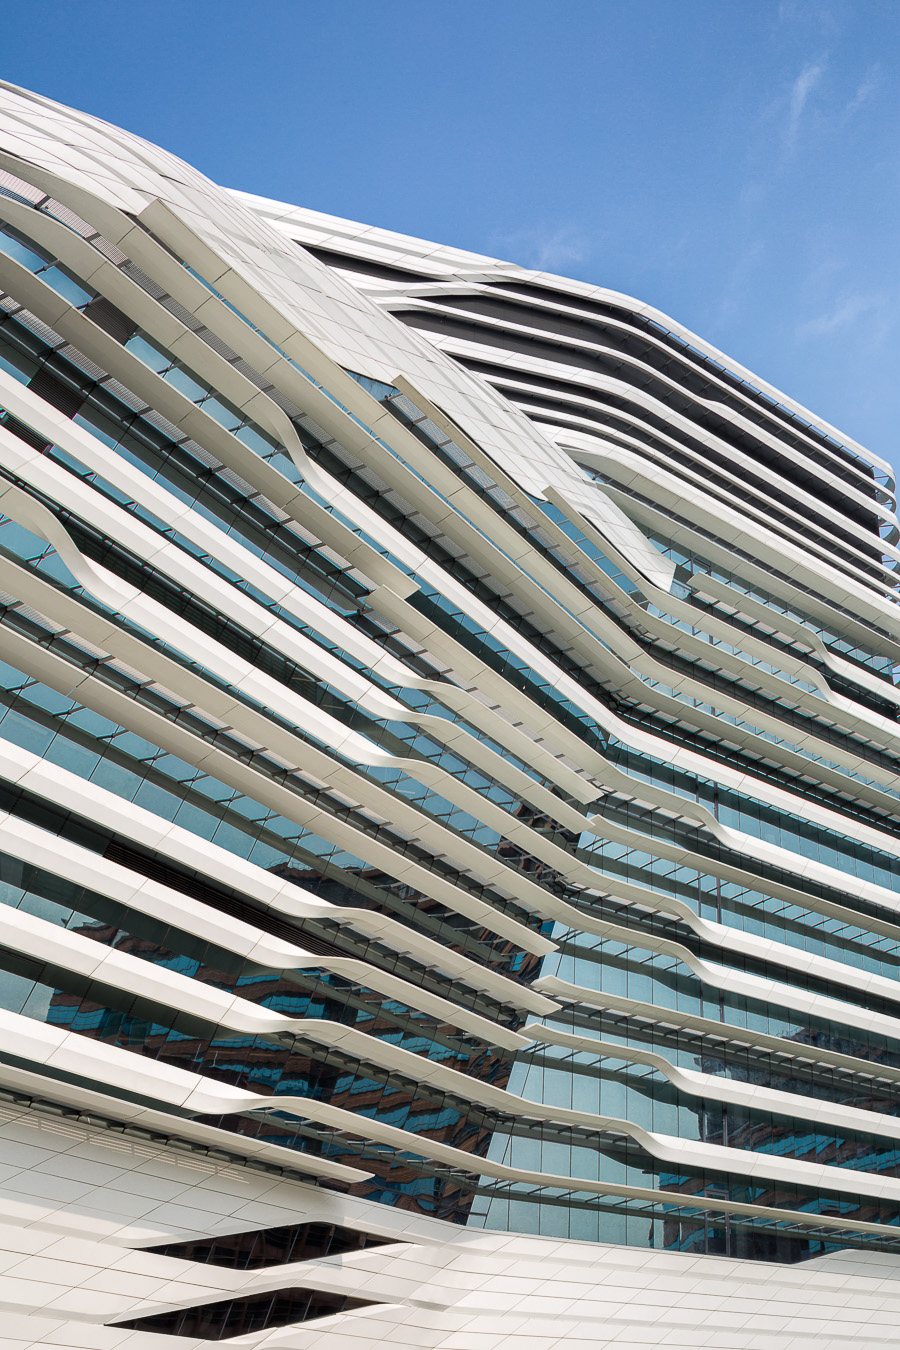 doublespace_innovation_tower_hong_kong_zaha_hadid_architects-53.jpg